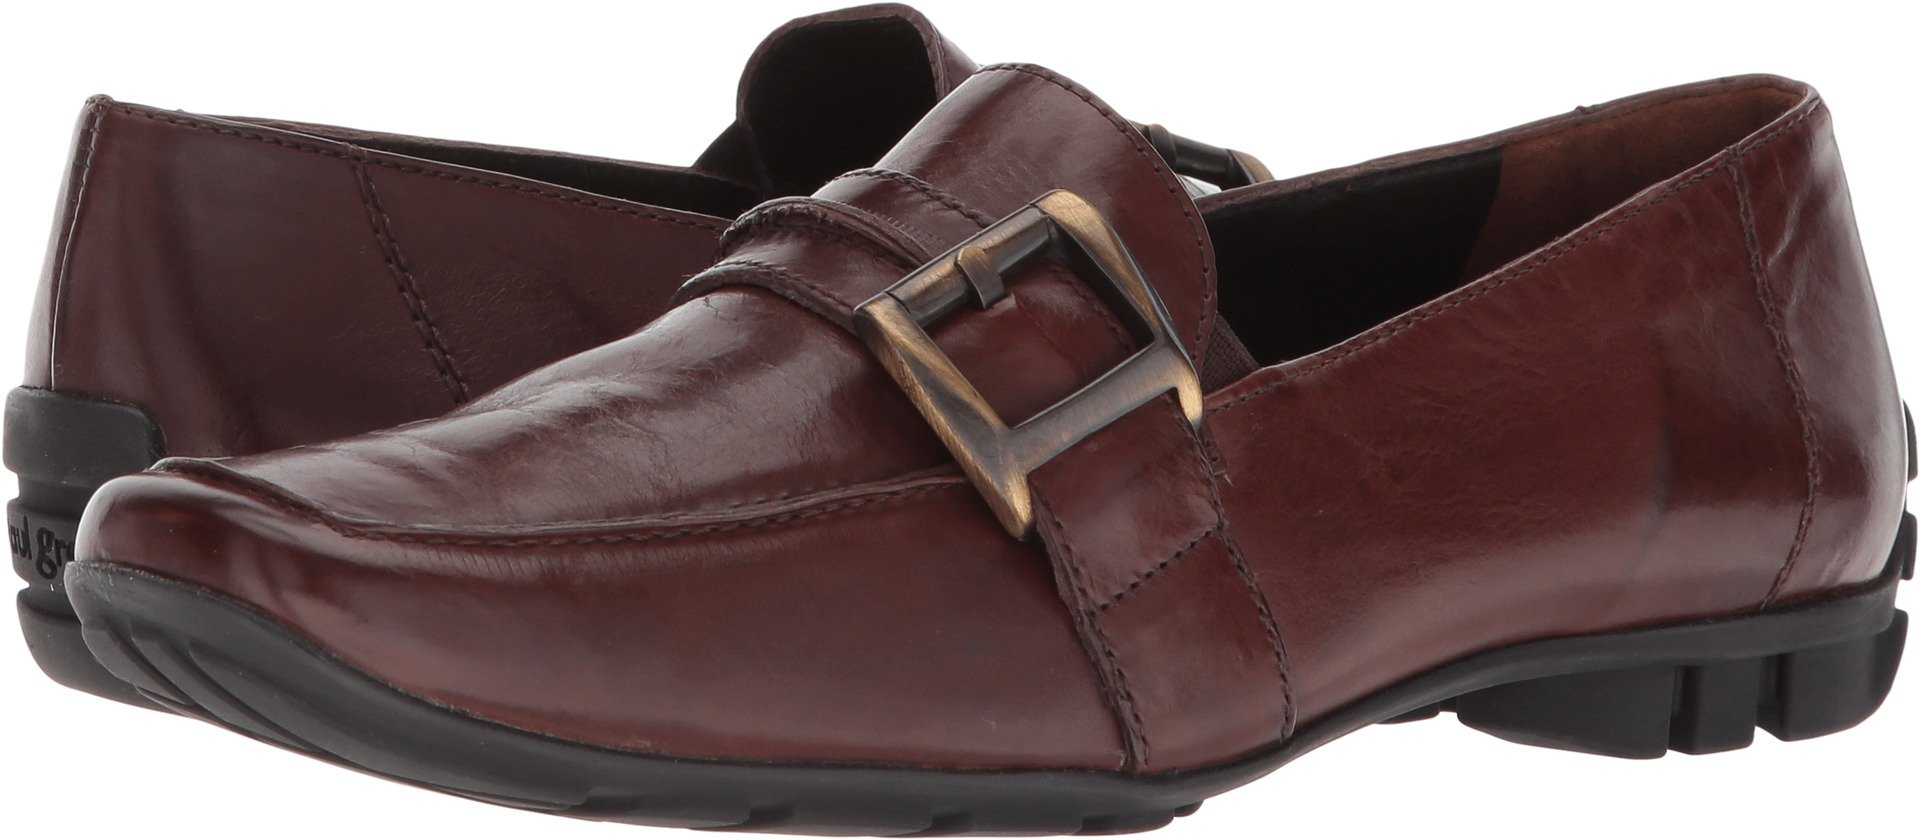 Paul Green Women's Neutron Loafer Saddle Leather 9.5 M US